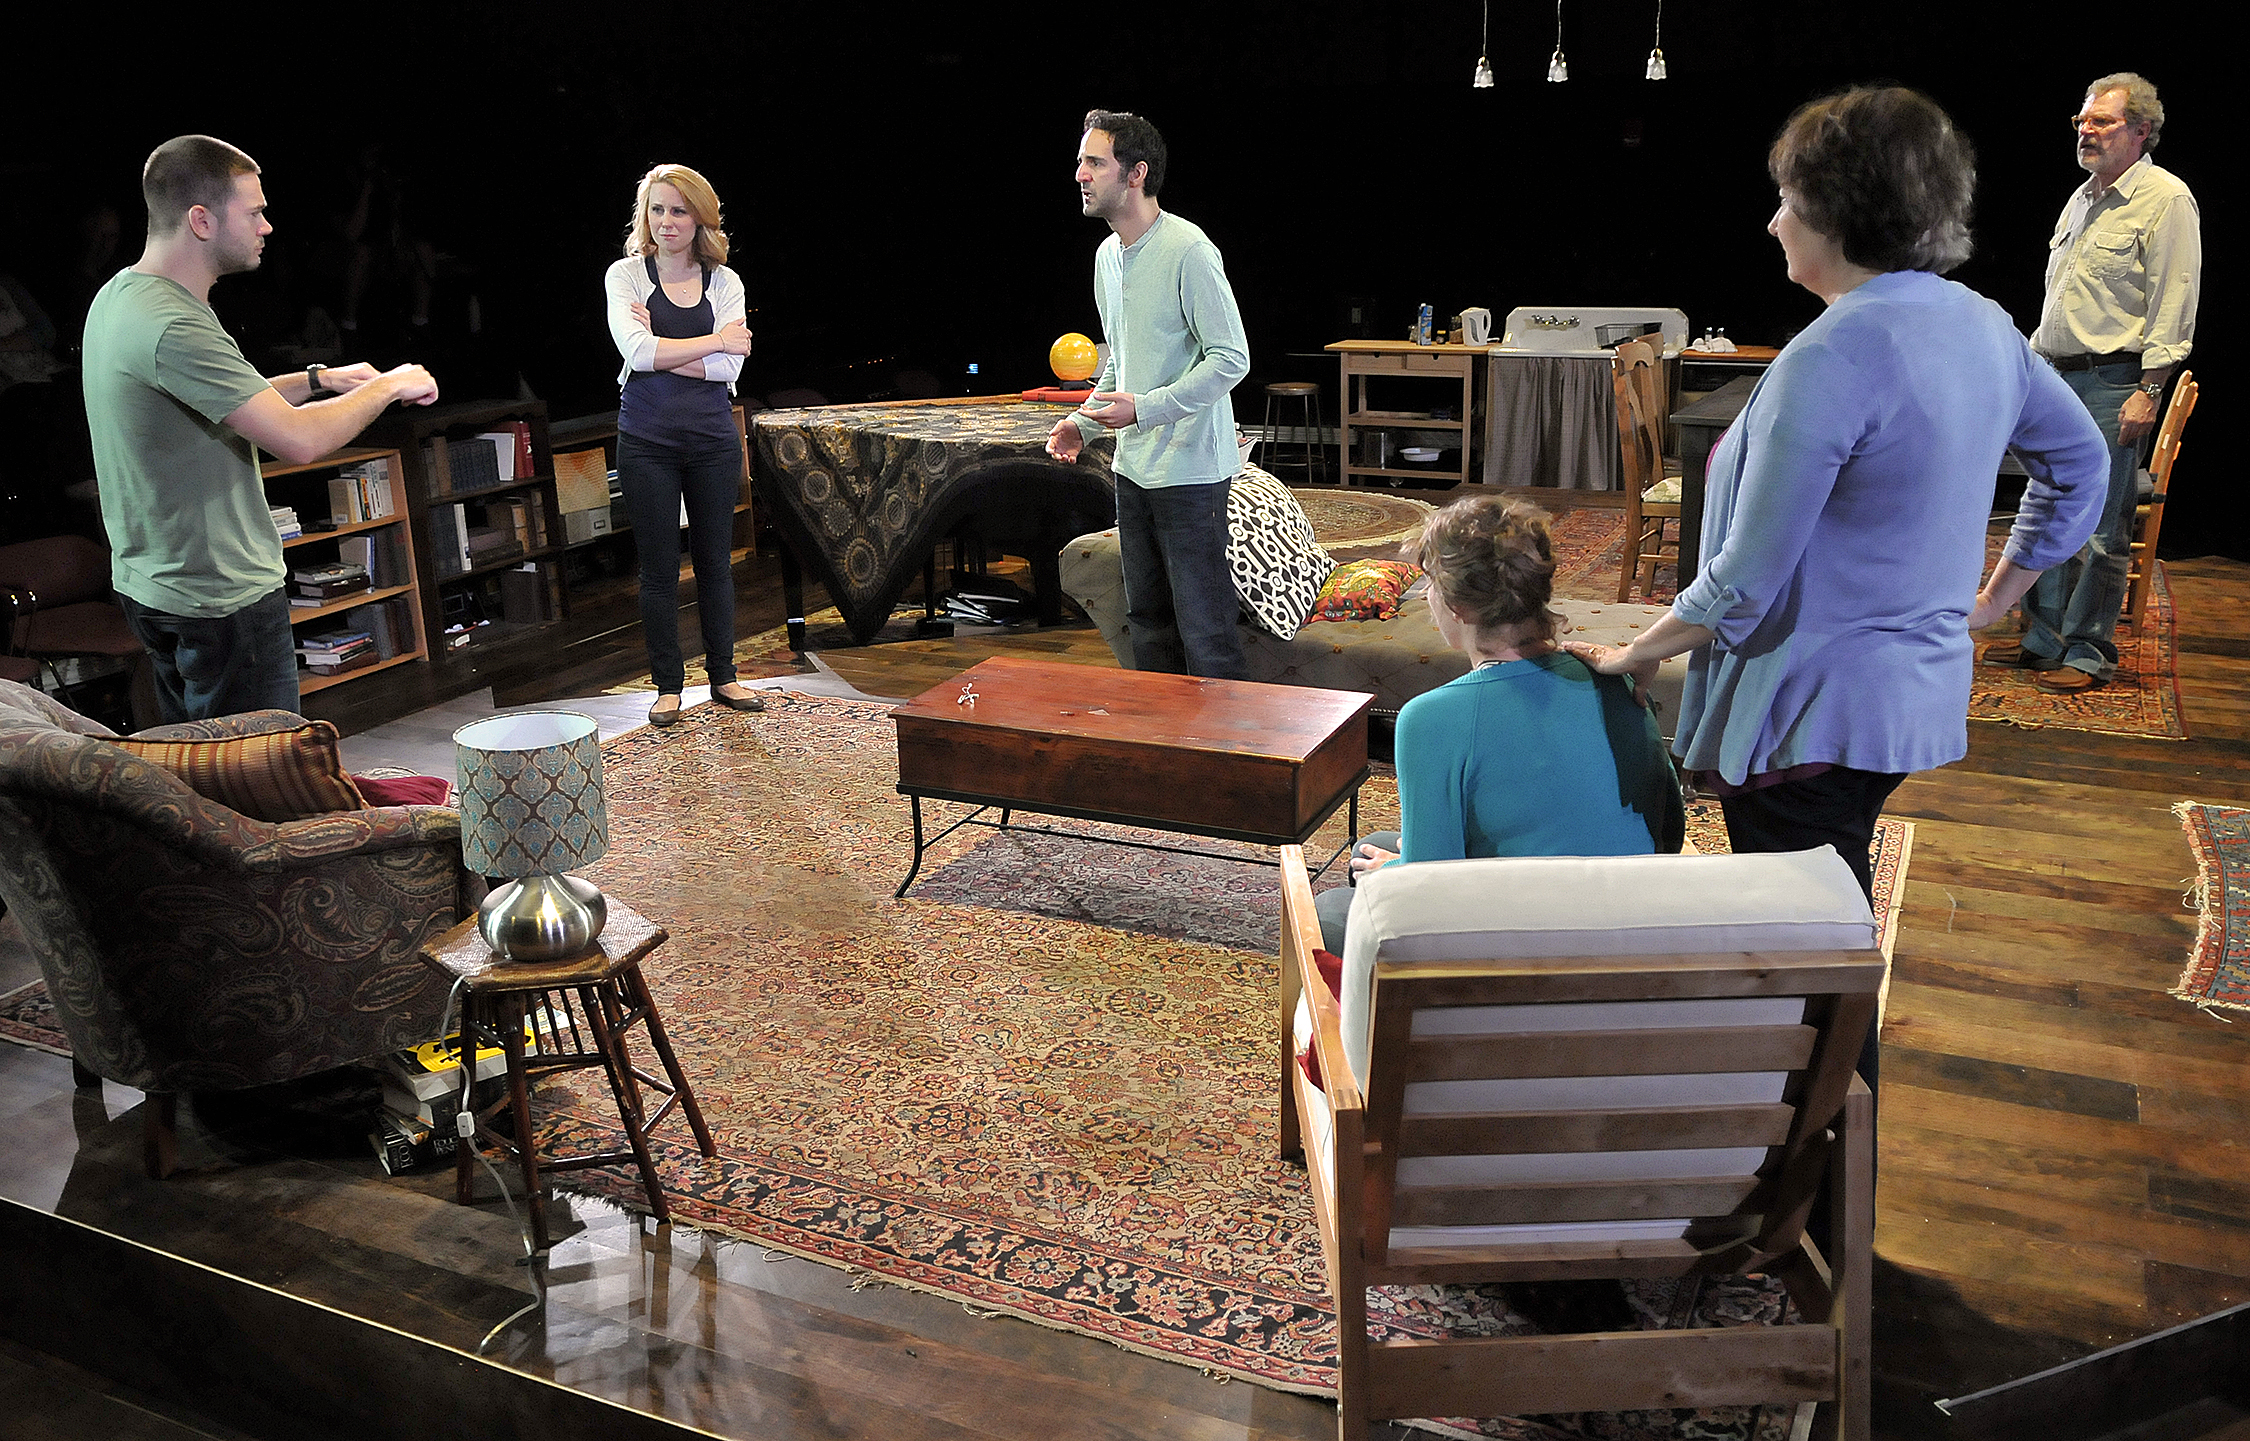 James Caverly, Erica Spyres, Nael Nacer, Kathryn Miles, Patrick Shea, and Adrianne Krstansky in the SpeakEasy Stage Company production of TRIBES directed by M. Bevin O'Gara. Photo: Craig Bailey